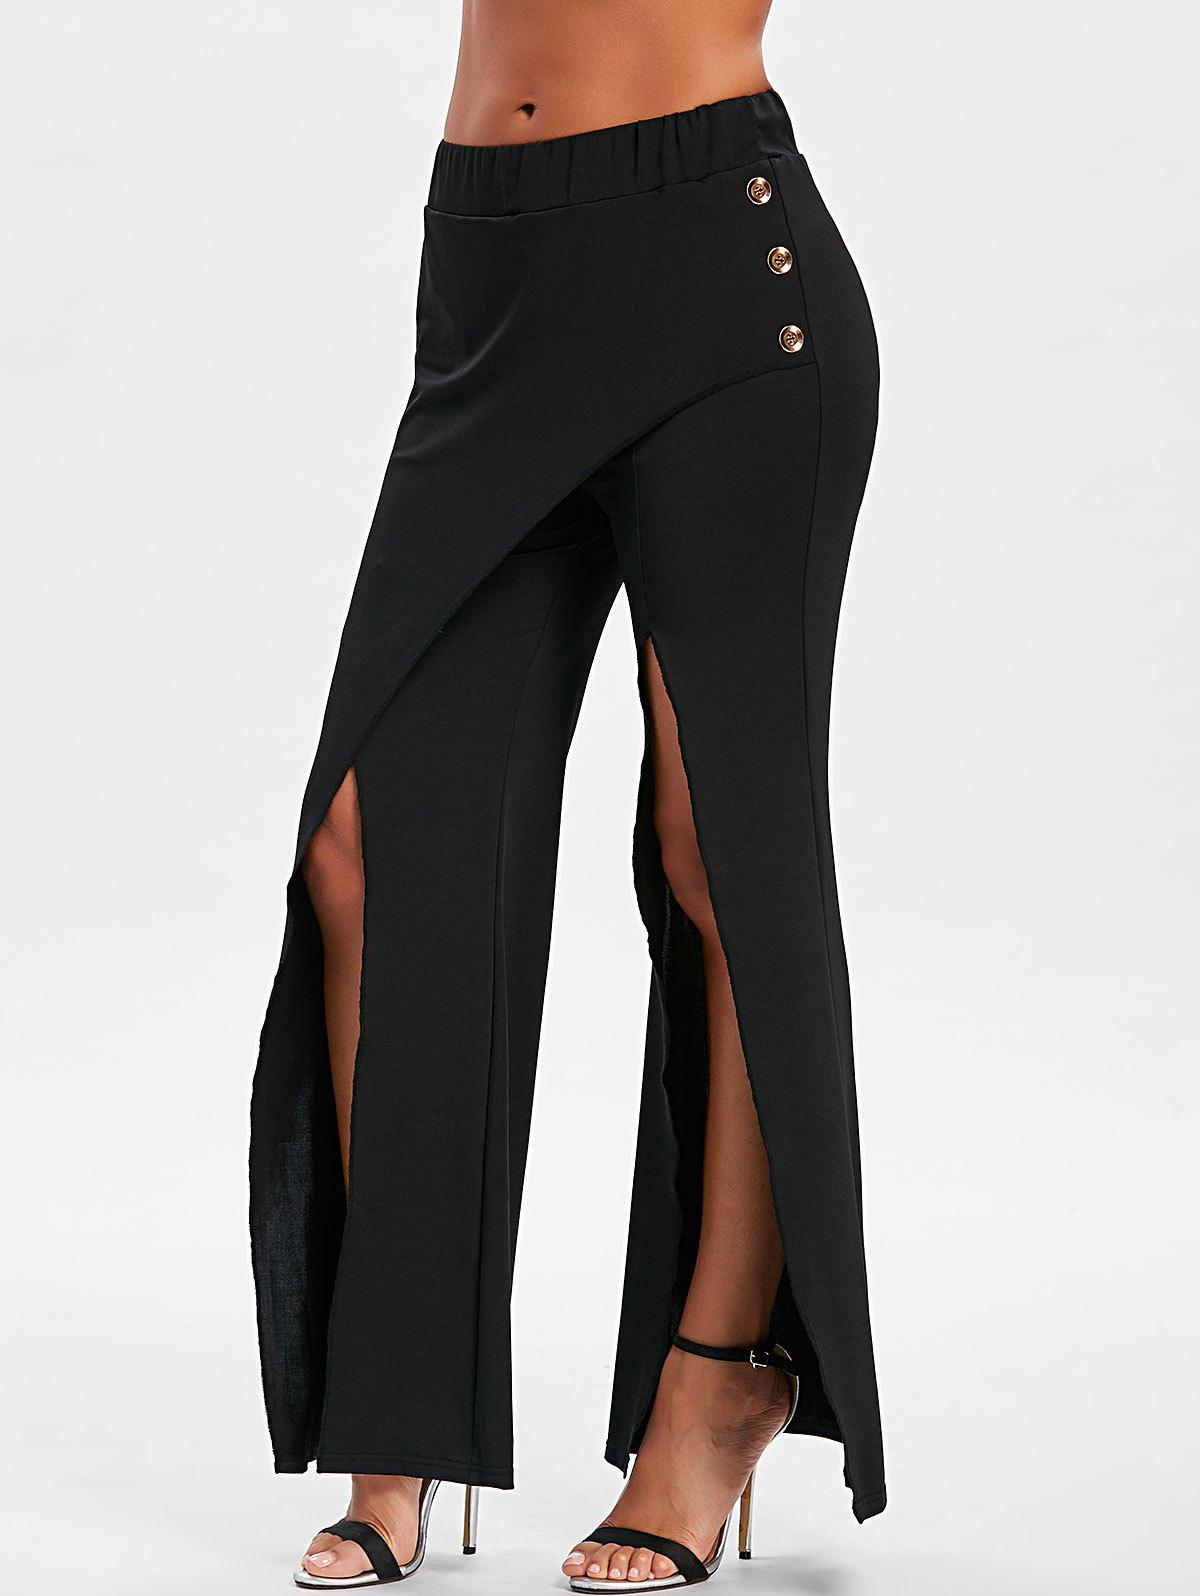 Fashion Buttoned Front Slit Overlap Flare Pants